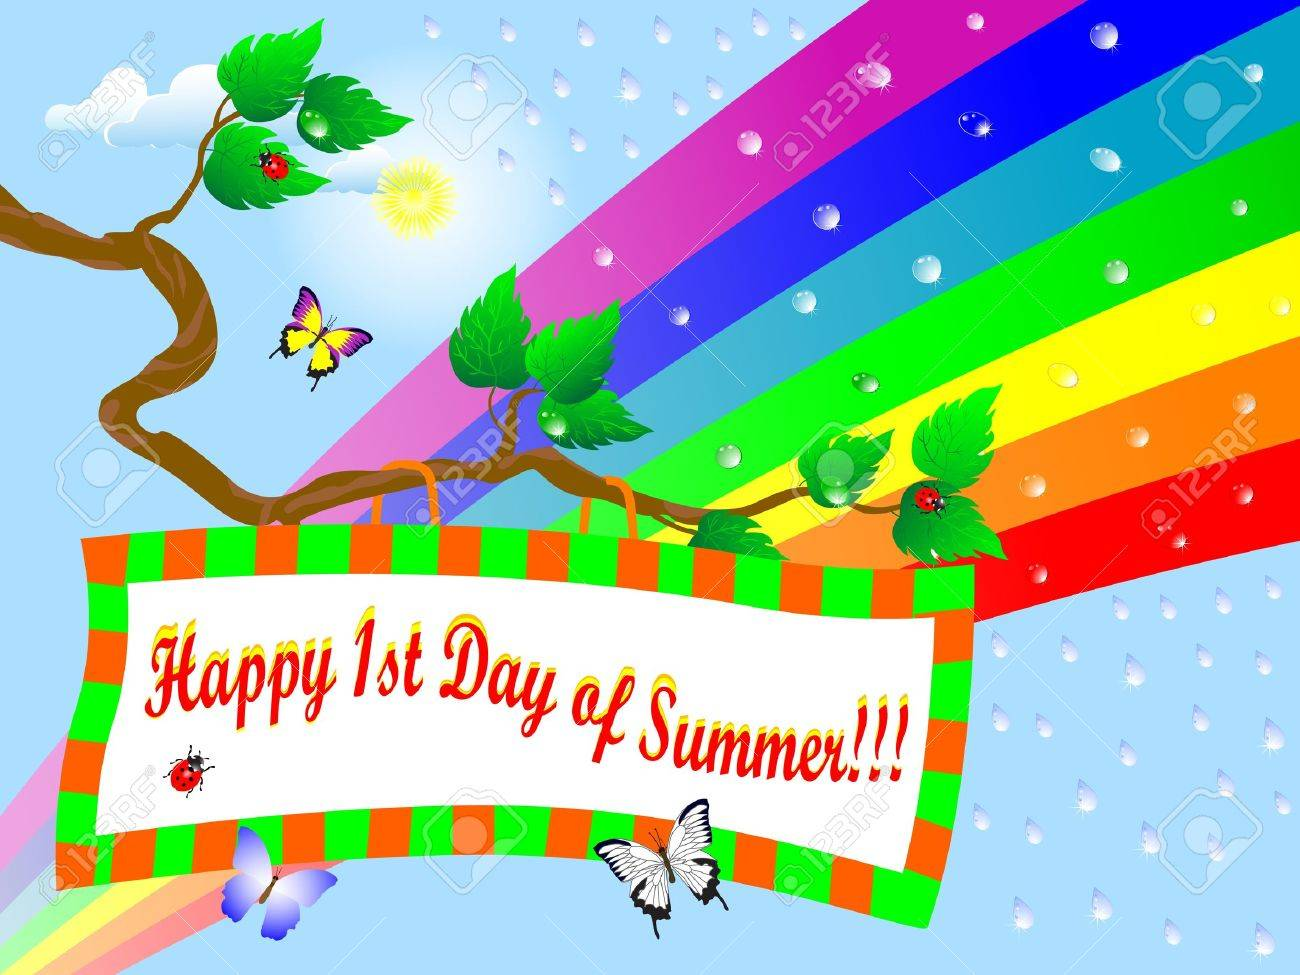 free first day of summer 2012 clipart   First Day of Summer - First Day of Summer  Clip Art - Summer Clip Art   First day of summer, Summer clipart, Day